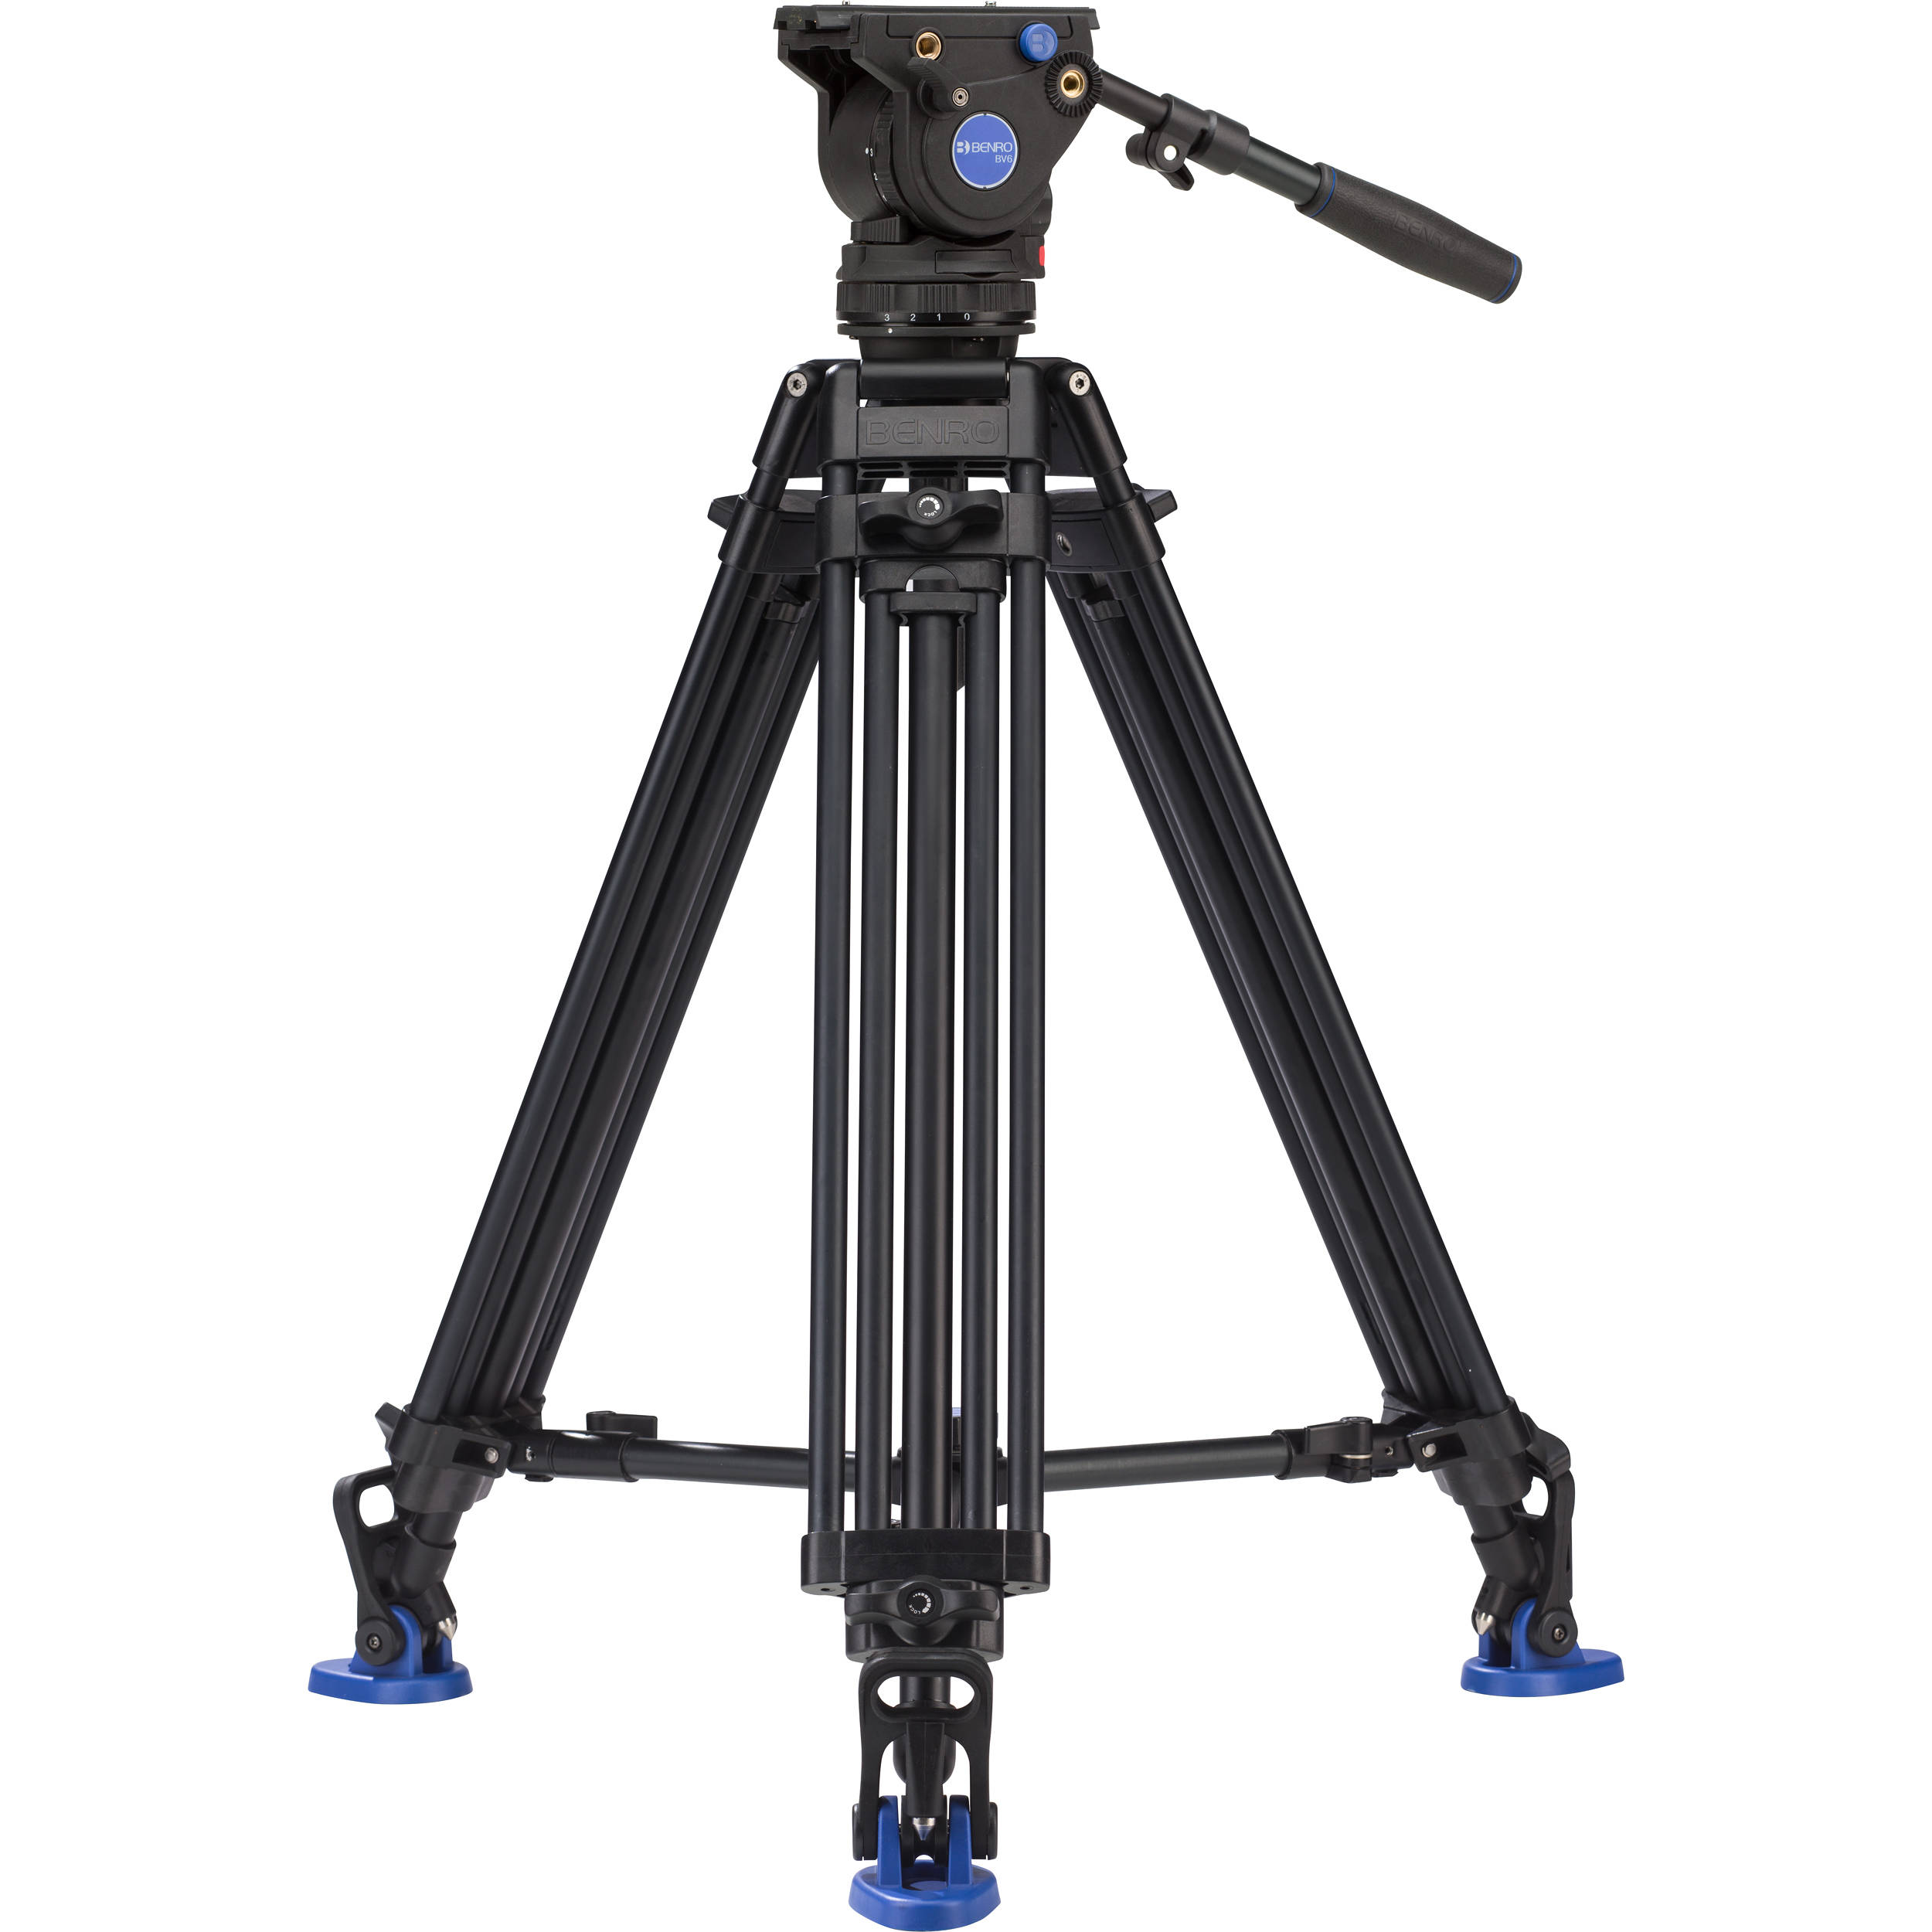 benro_bv6pro_bv4pro_video_tripod_kit_1246007